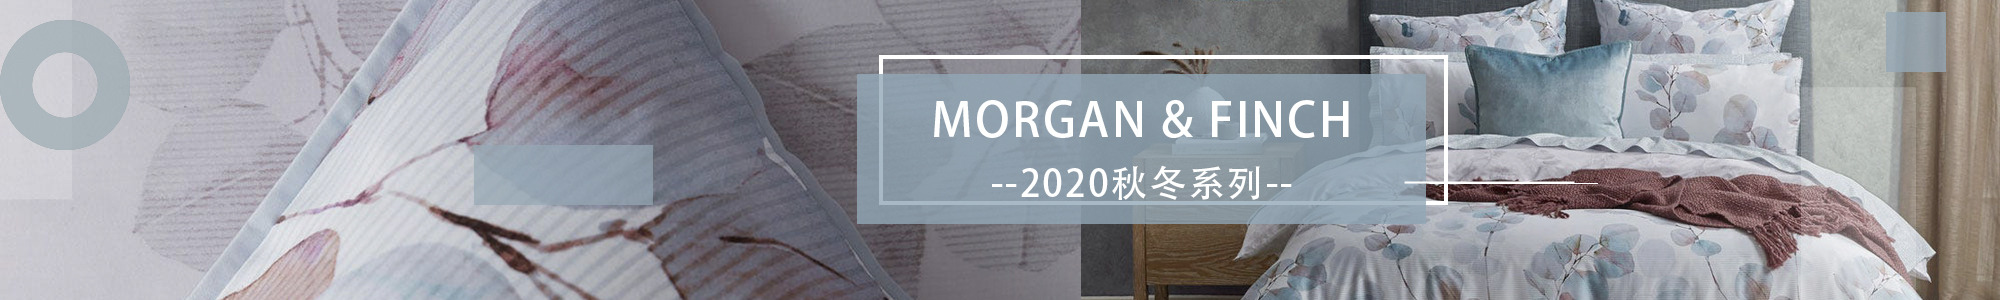 MORGAN & FINCH2020床上用品秋冬系列